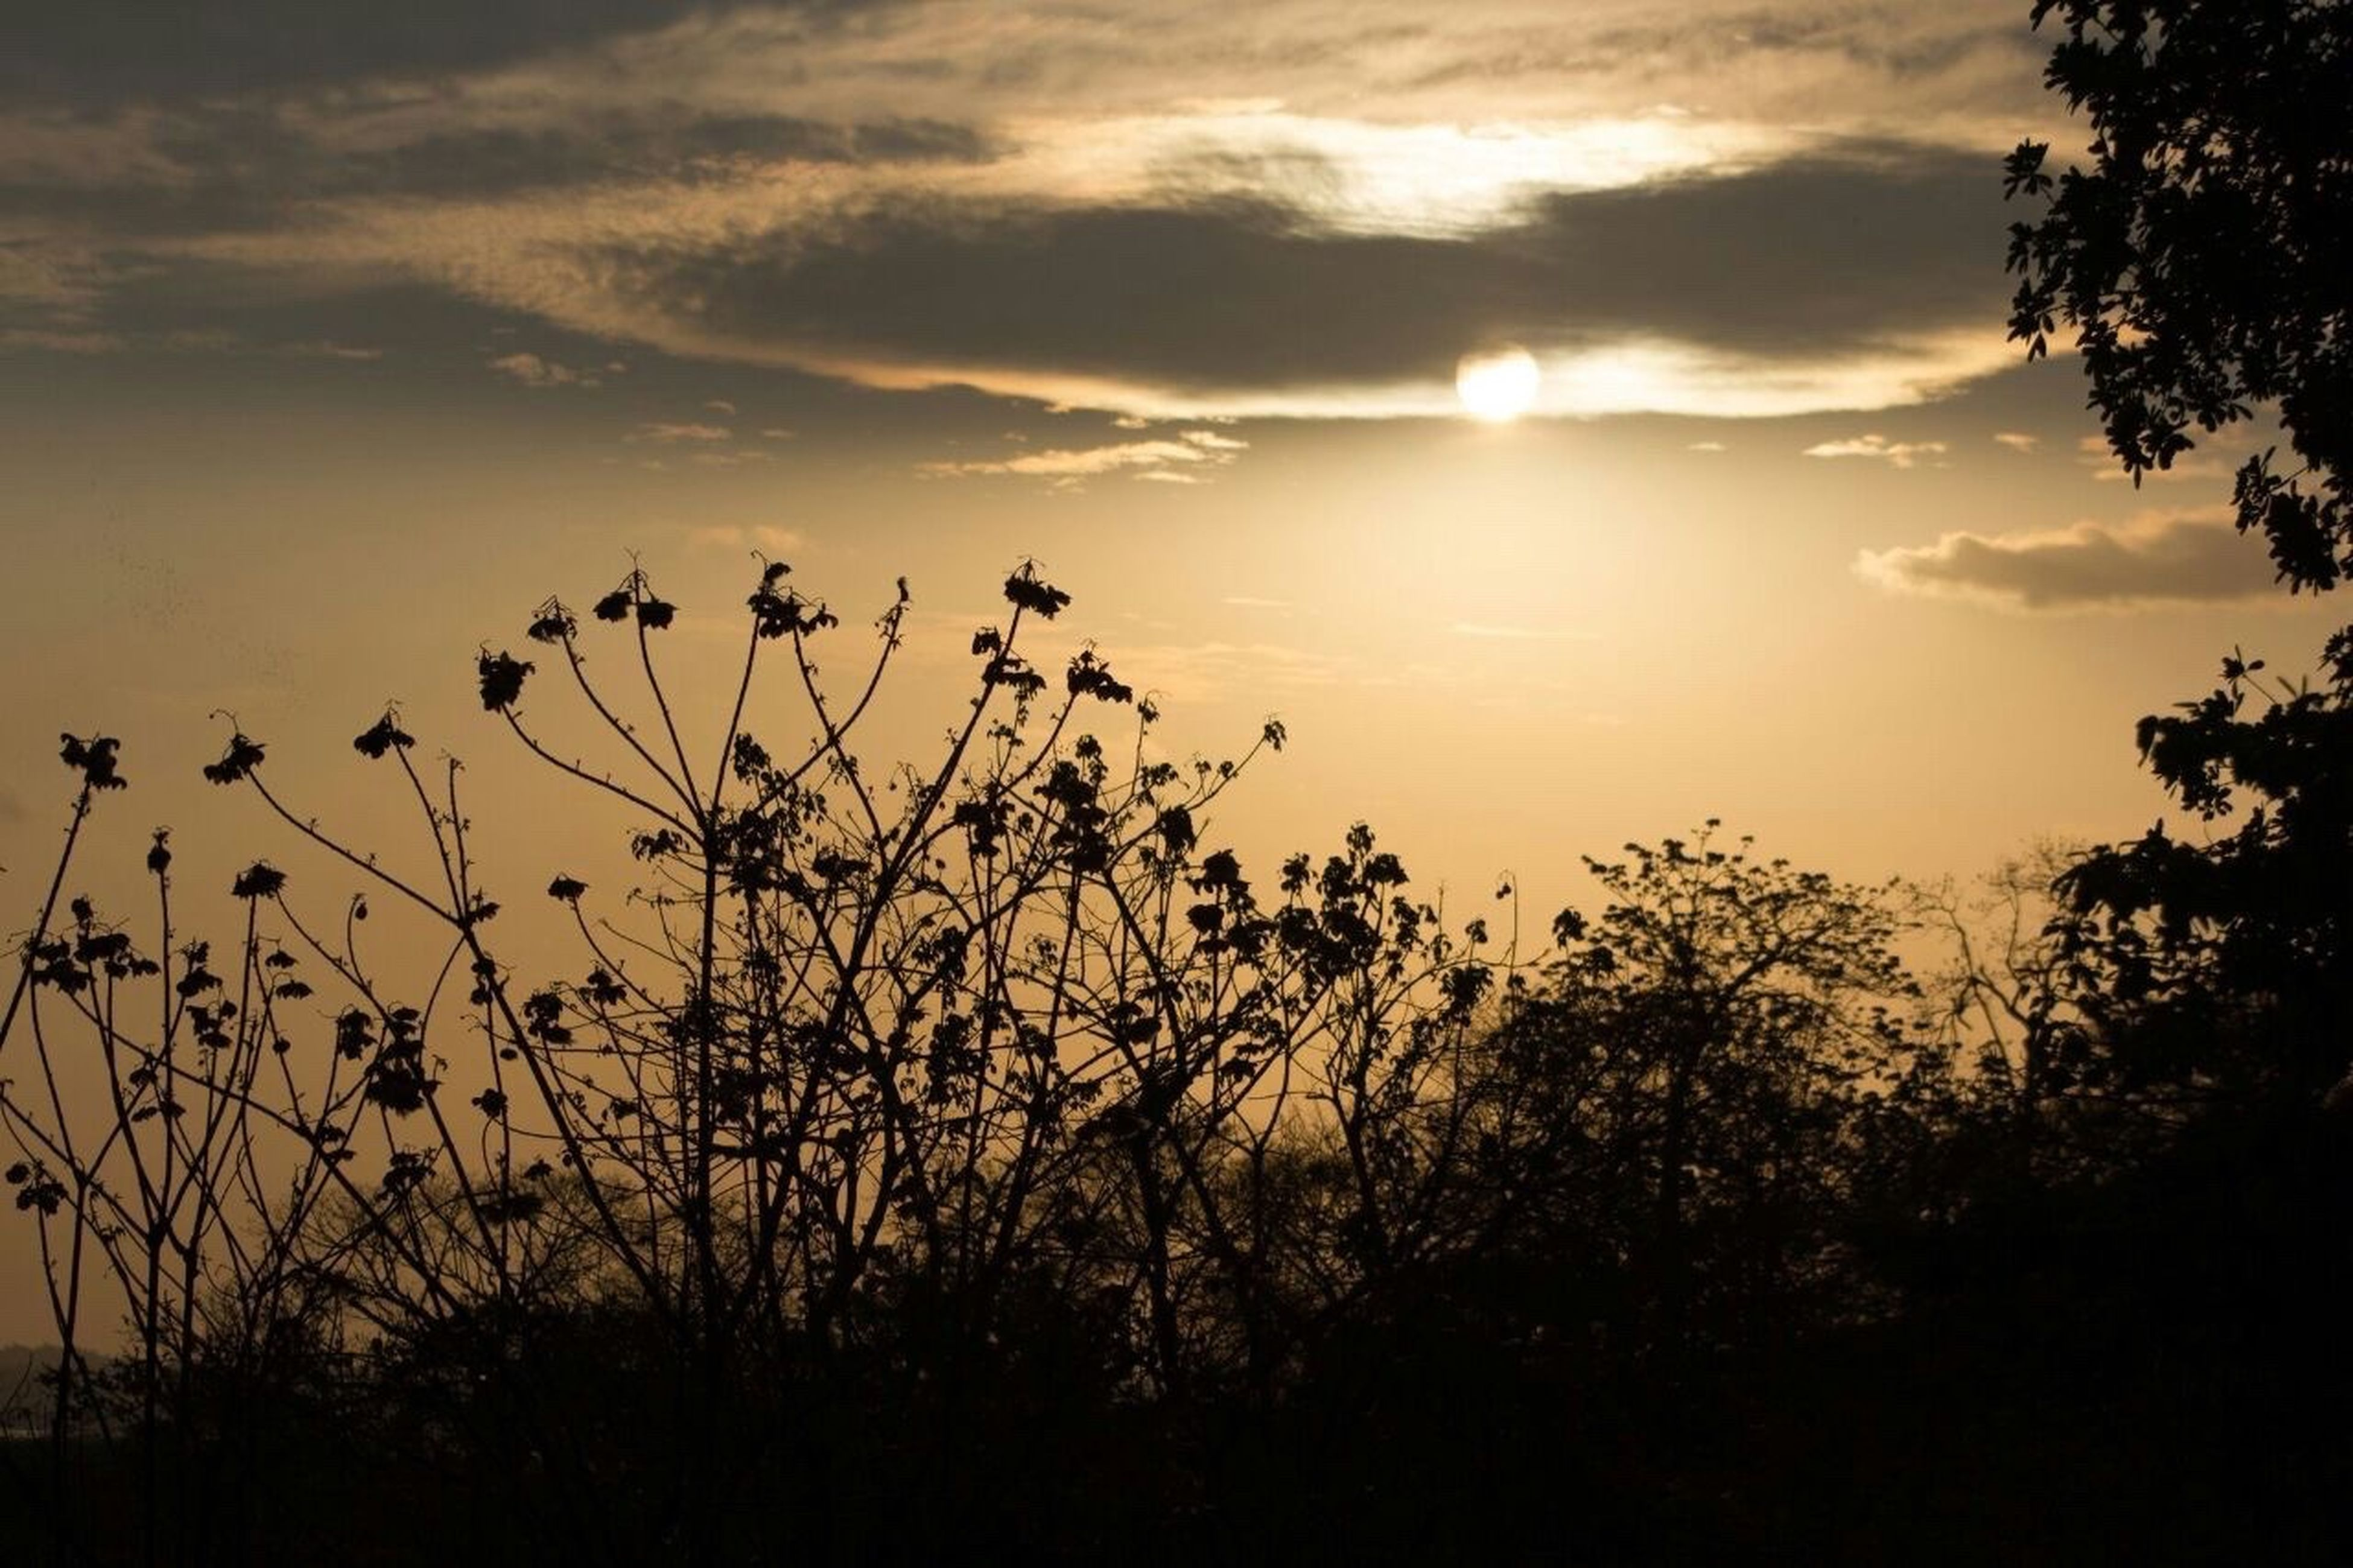 sunset, nature, sun, growth, silhouette, beauty in nature, plant, tranquility, sunlight, sky, outdoors, tranquil scene, no people, scenics, tree, day